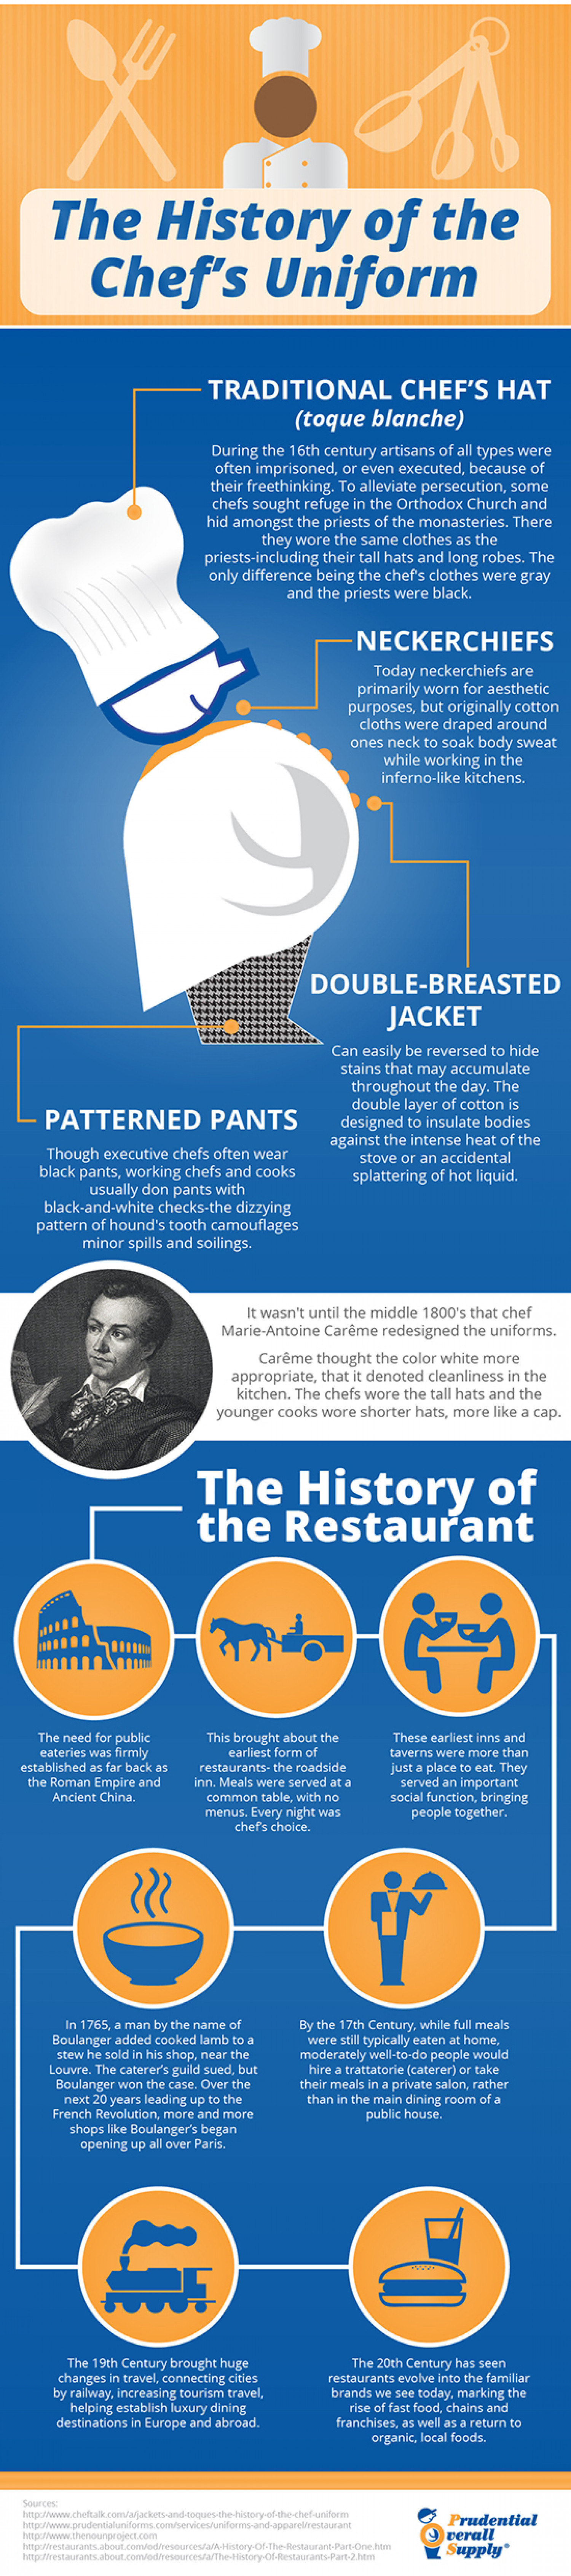 A History of the Creation and Evolution of the Chef